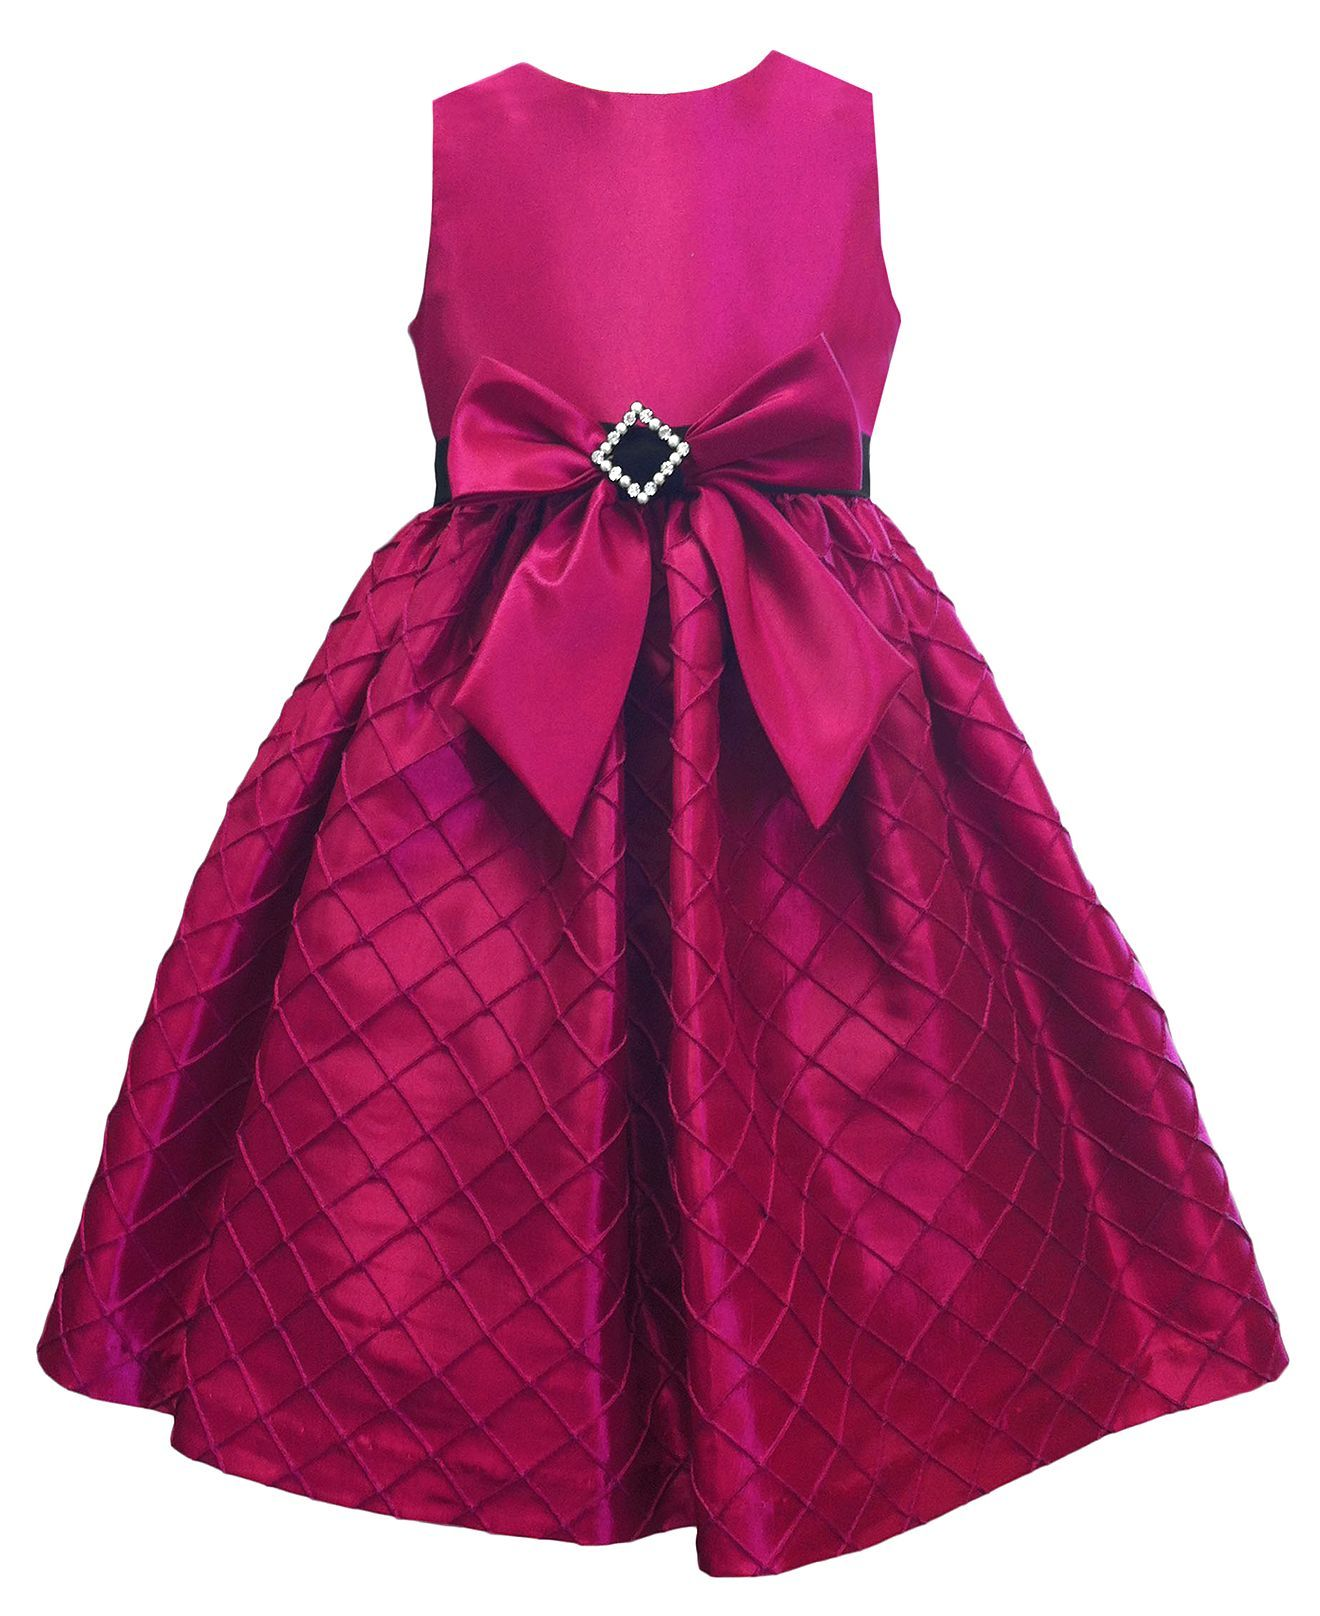 Jayne Coepland Kids Dress, Girls Taffeta Bow Dress - Kids Dresses ...